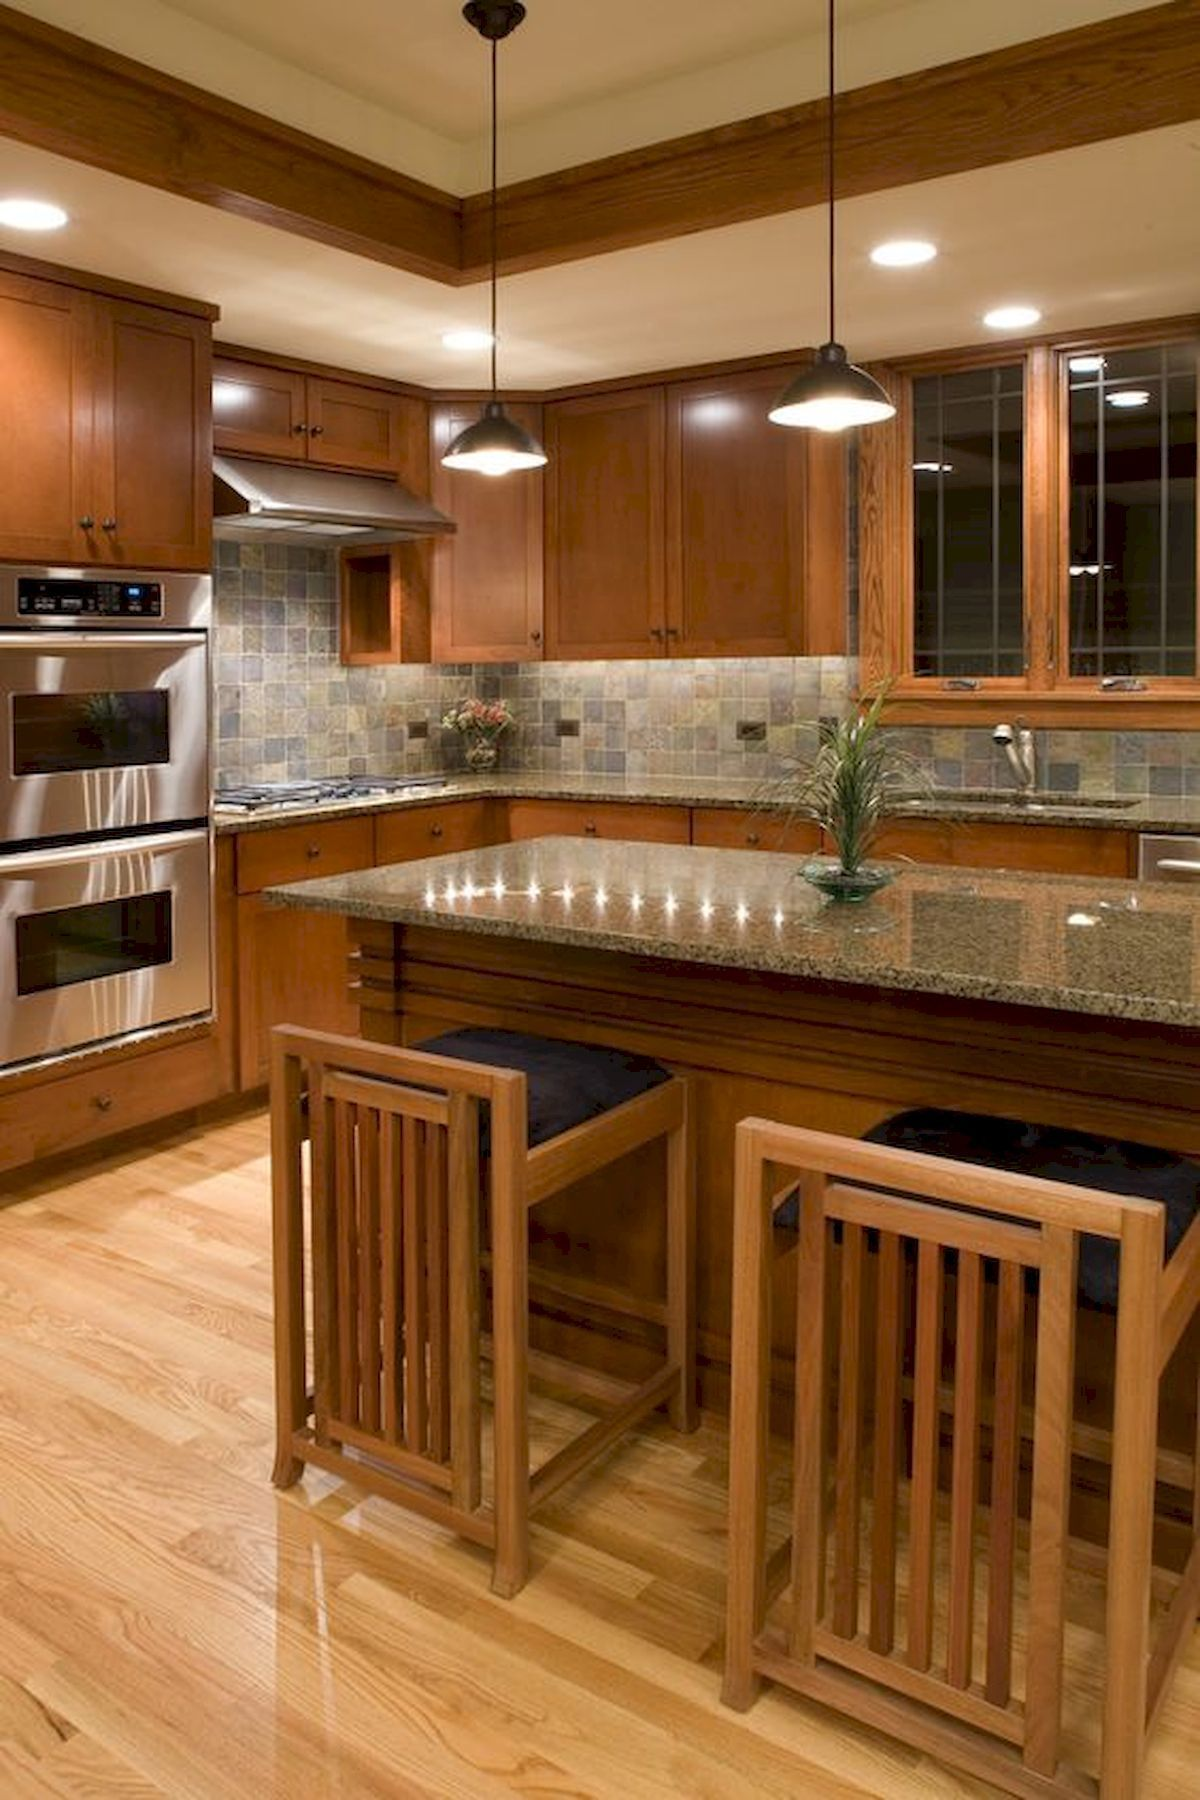 40 Awesome Craftsman Style Kitchen Design Ideas (31 #craftsmanstylehomes